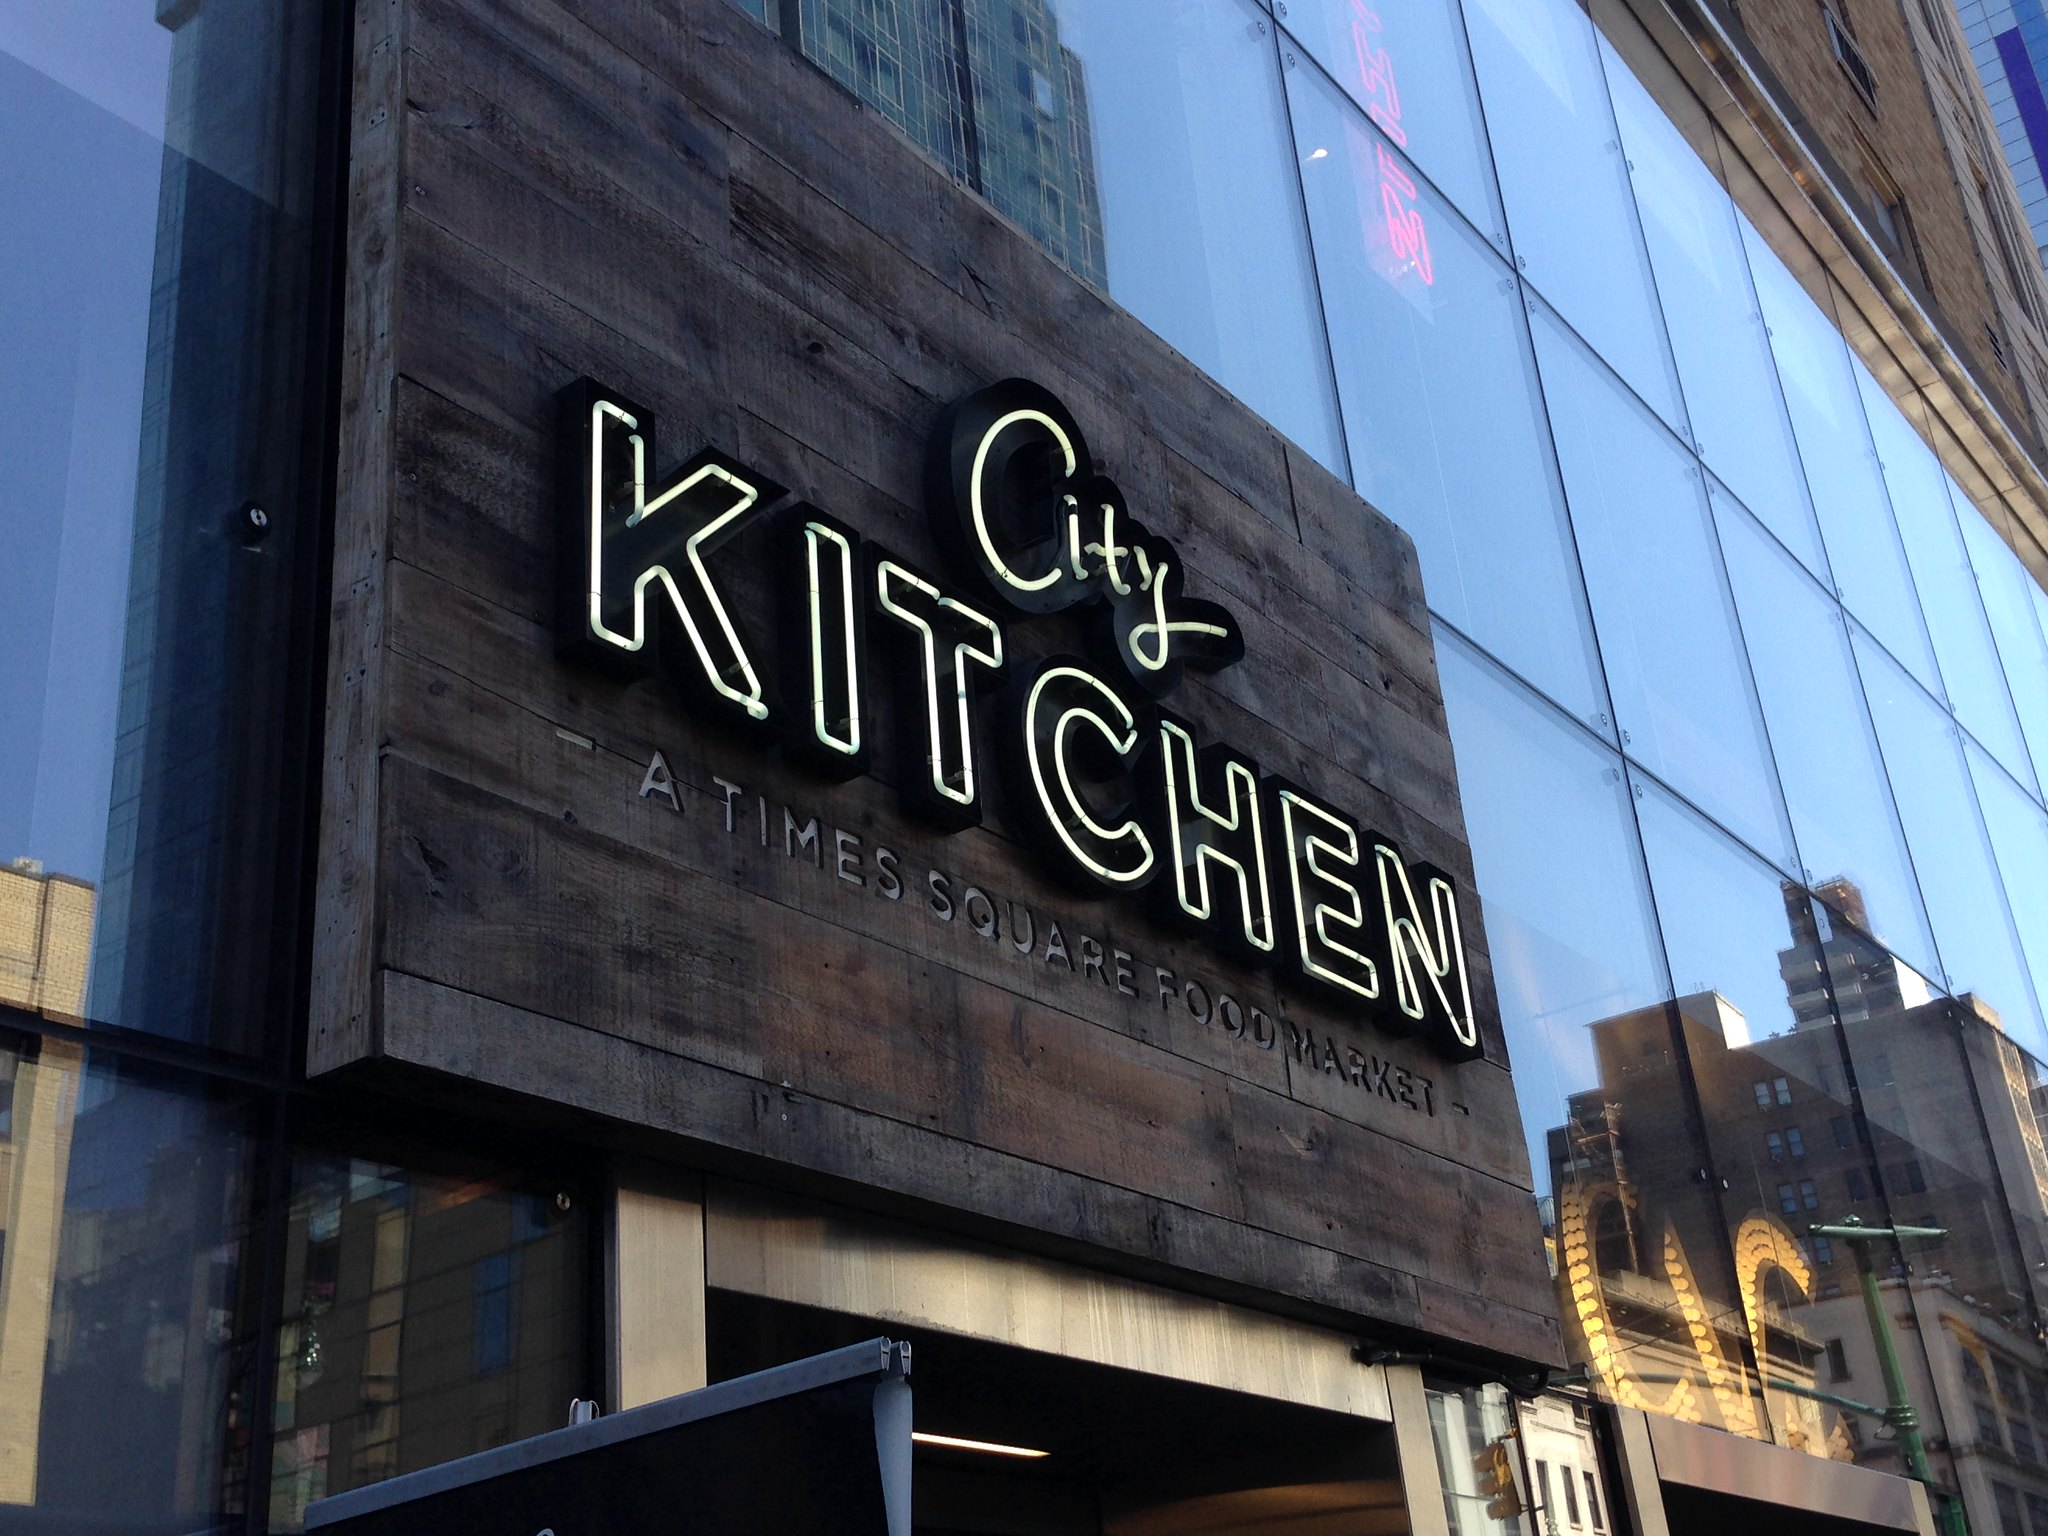 City Kitchen Times Square Food Market, NYC. Nueva York